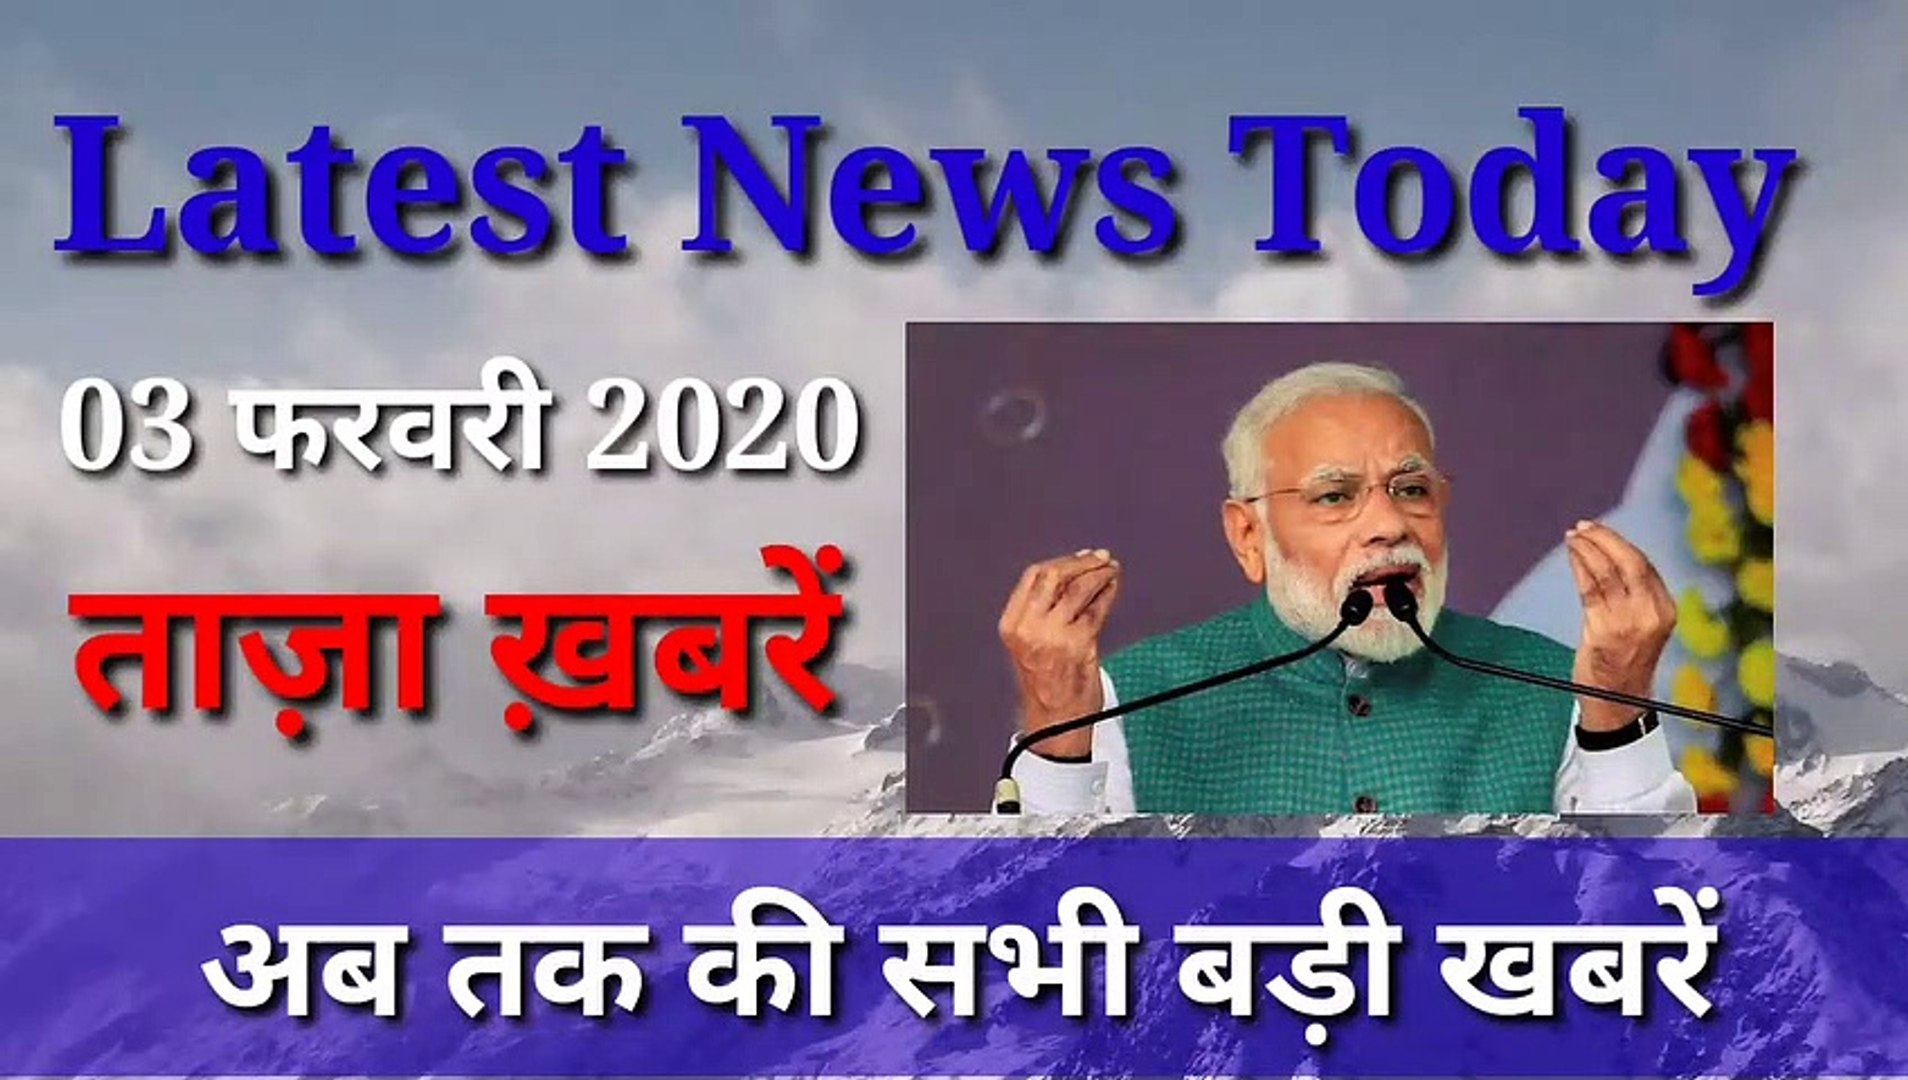 03 February 2020 : Morning News | Latest News Today |  Today News | Hindi News | India News